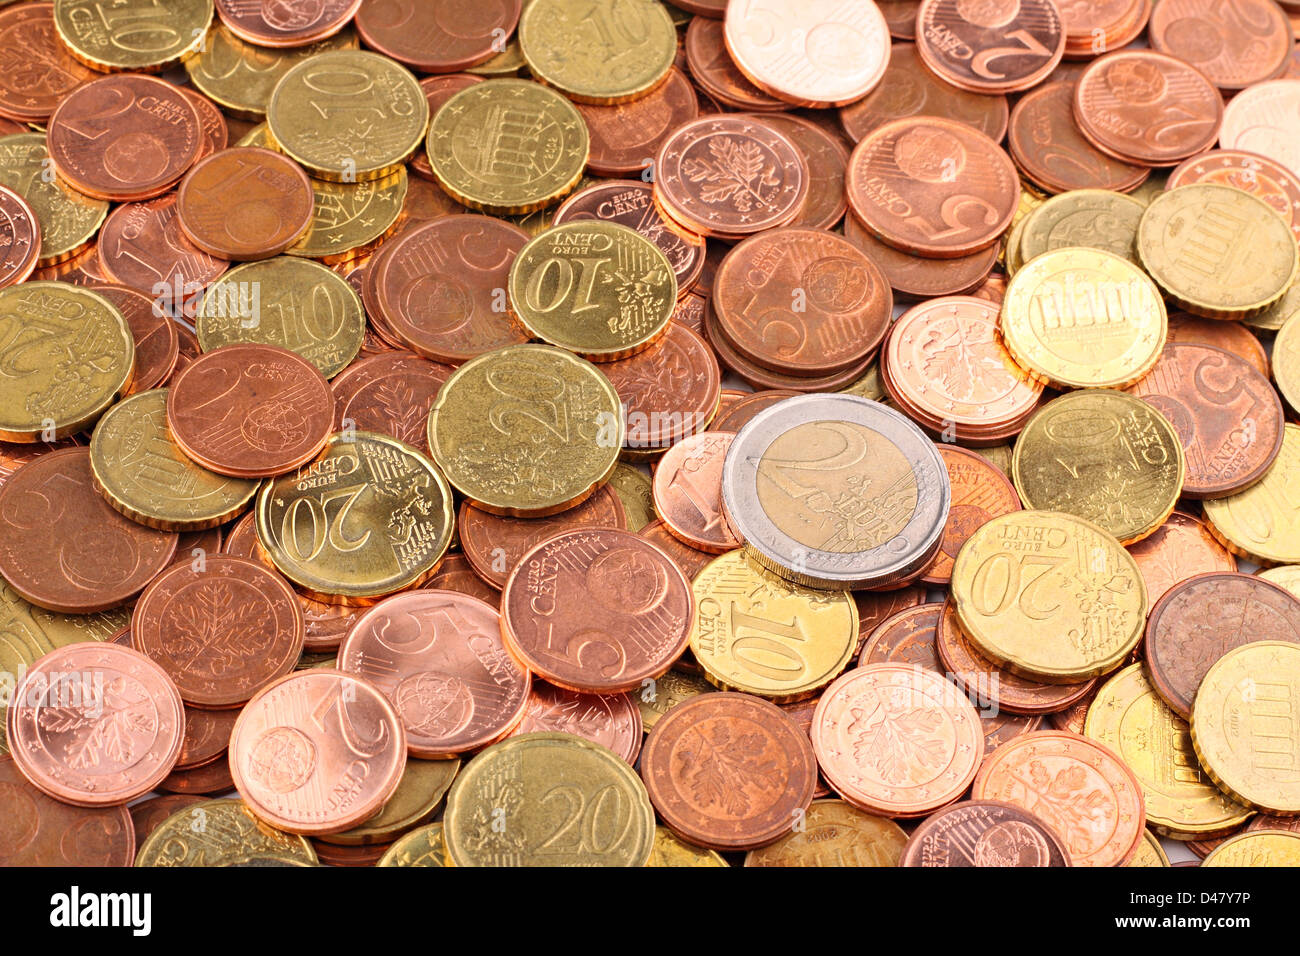 A lot of EURO coins - Stock Image